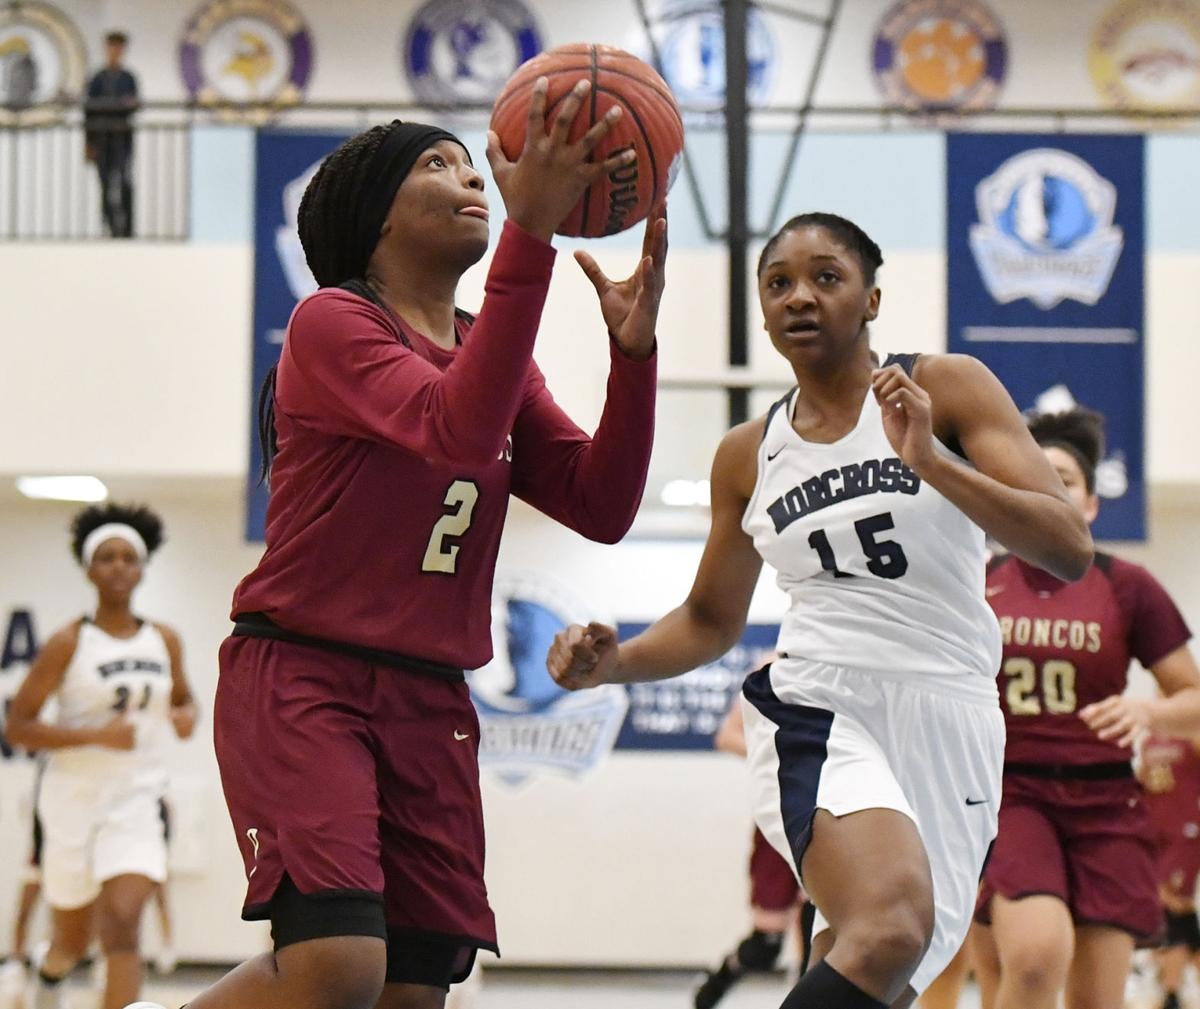 Niles' unlikely drive lifts Brookwood girls basketball past Norcross for 7-AAAAAAA title